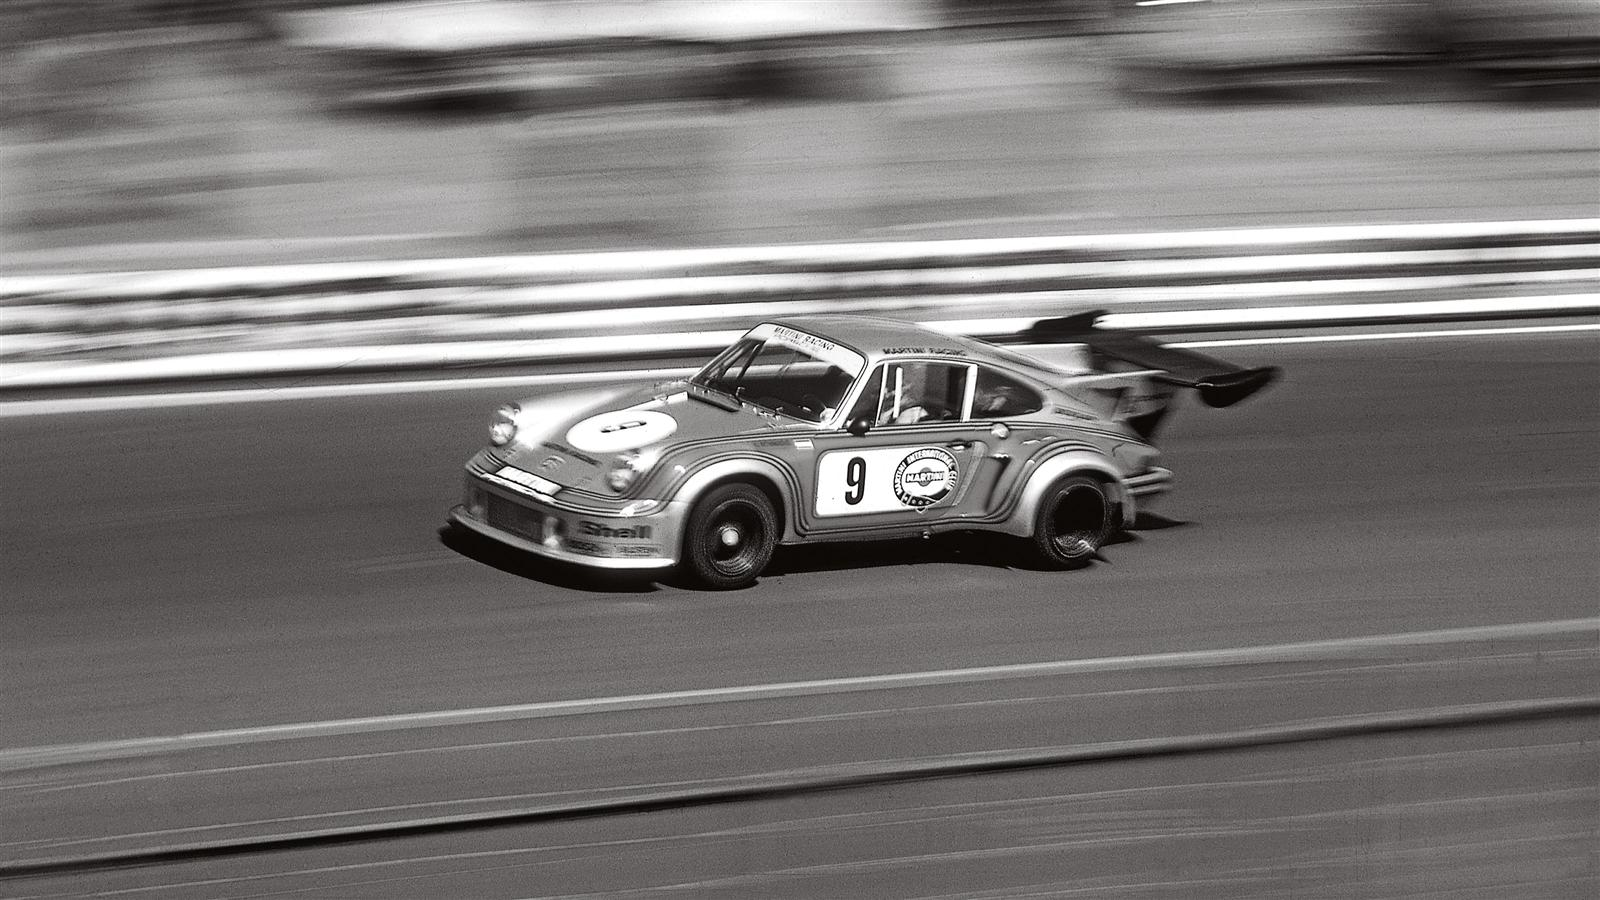 911Carrera RSR Turbo at Le Mans in 1974